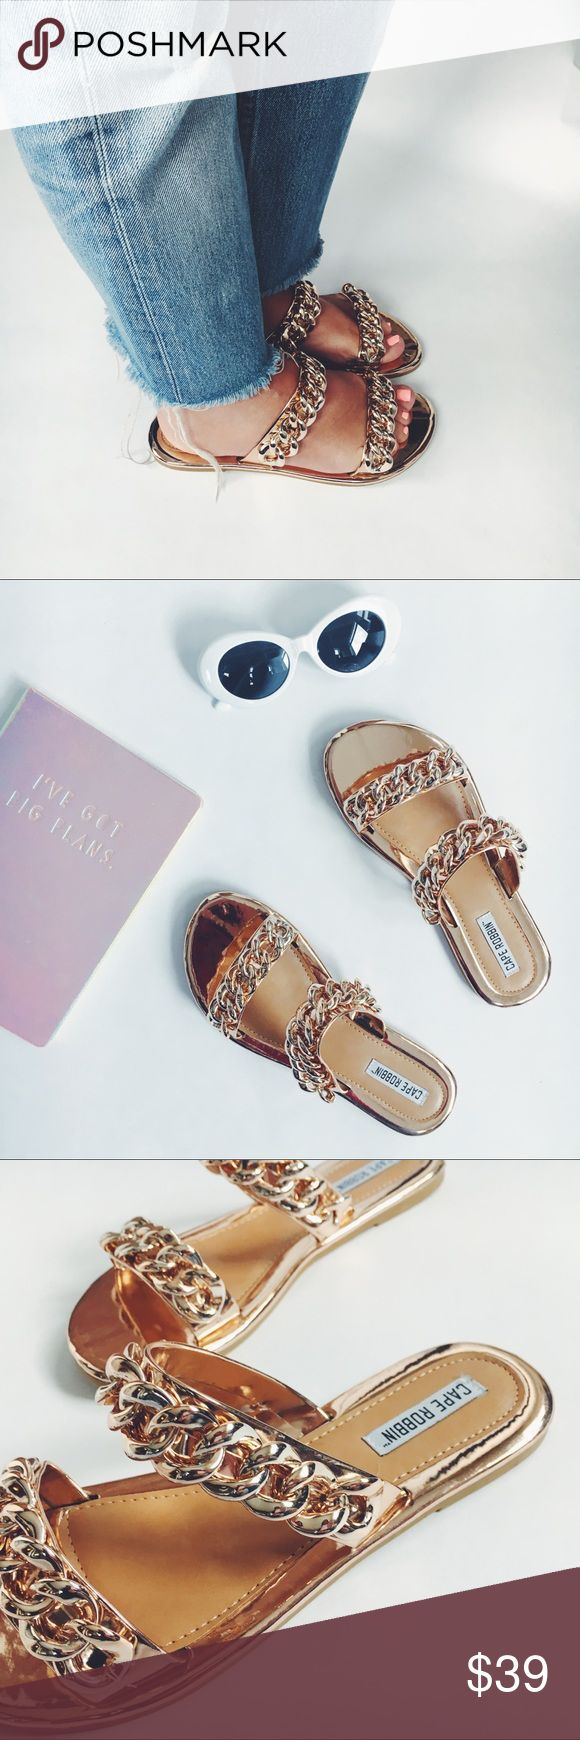 Sofia Rose Gold Metallic Chain Link Slides Mules New Boutique Item. The Sofia Sandal Slides feature chain link detailing, a rose gold metallic color, vegan material, and a slip on silhouette! Silhouette: Sandals, Mule, Slides, Flats. Heel: 0.5 inches. Width: Medium (B,M). Comes with box.True to size! Super Comfy + Chic!! Obsessed with these! Also available in Black with a silver Chain! Shoes Flats & Loafers